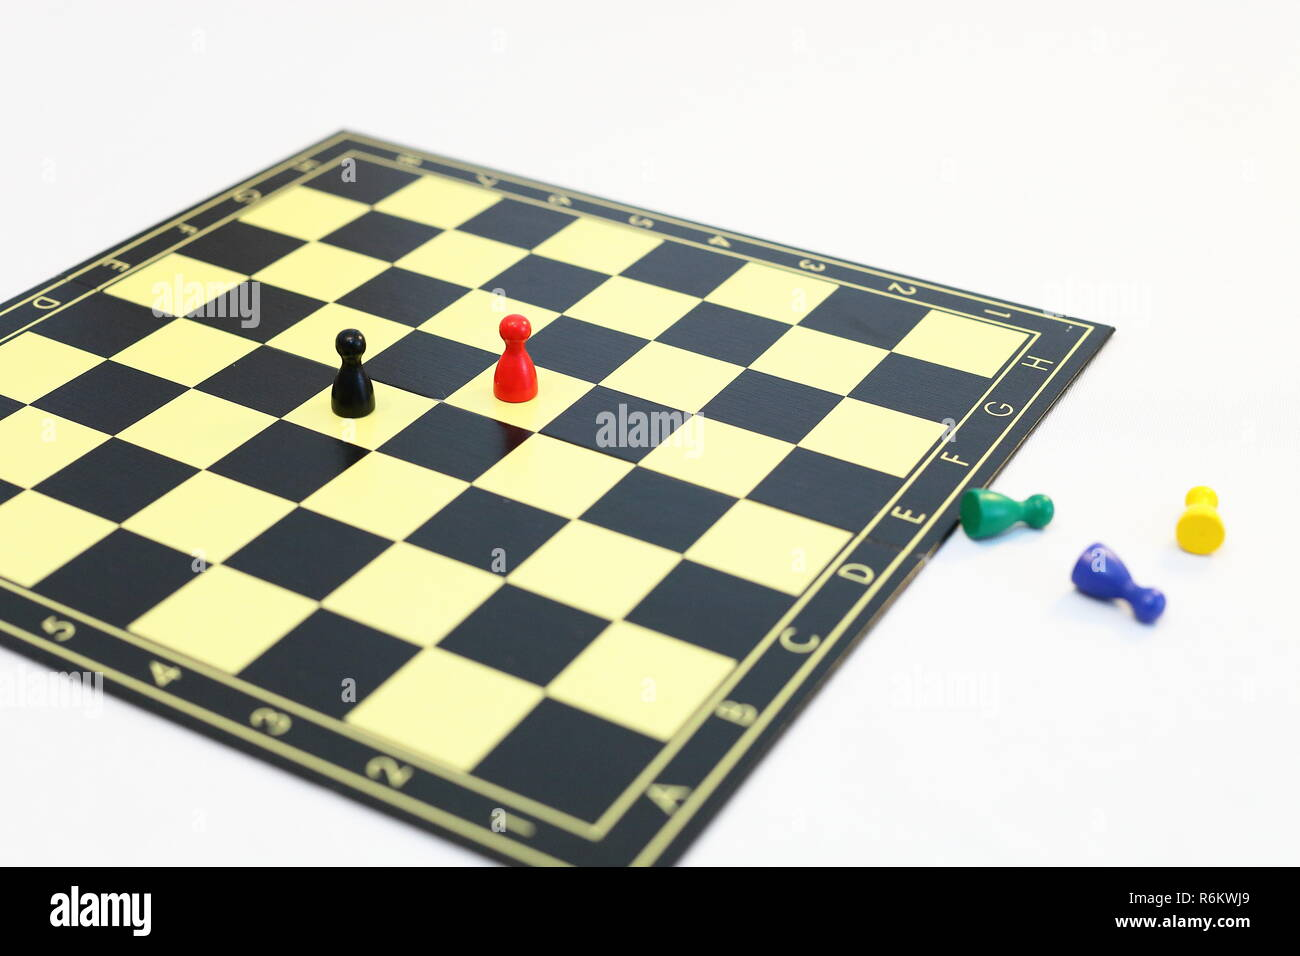 stalemate in the formation of a government - Stock Image